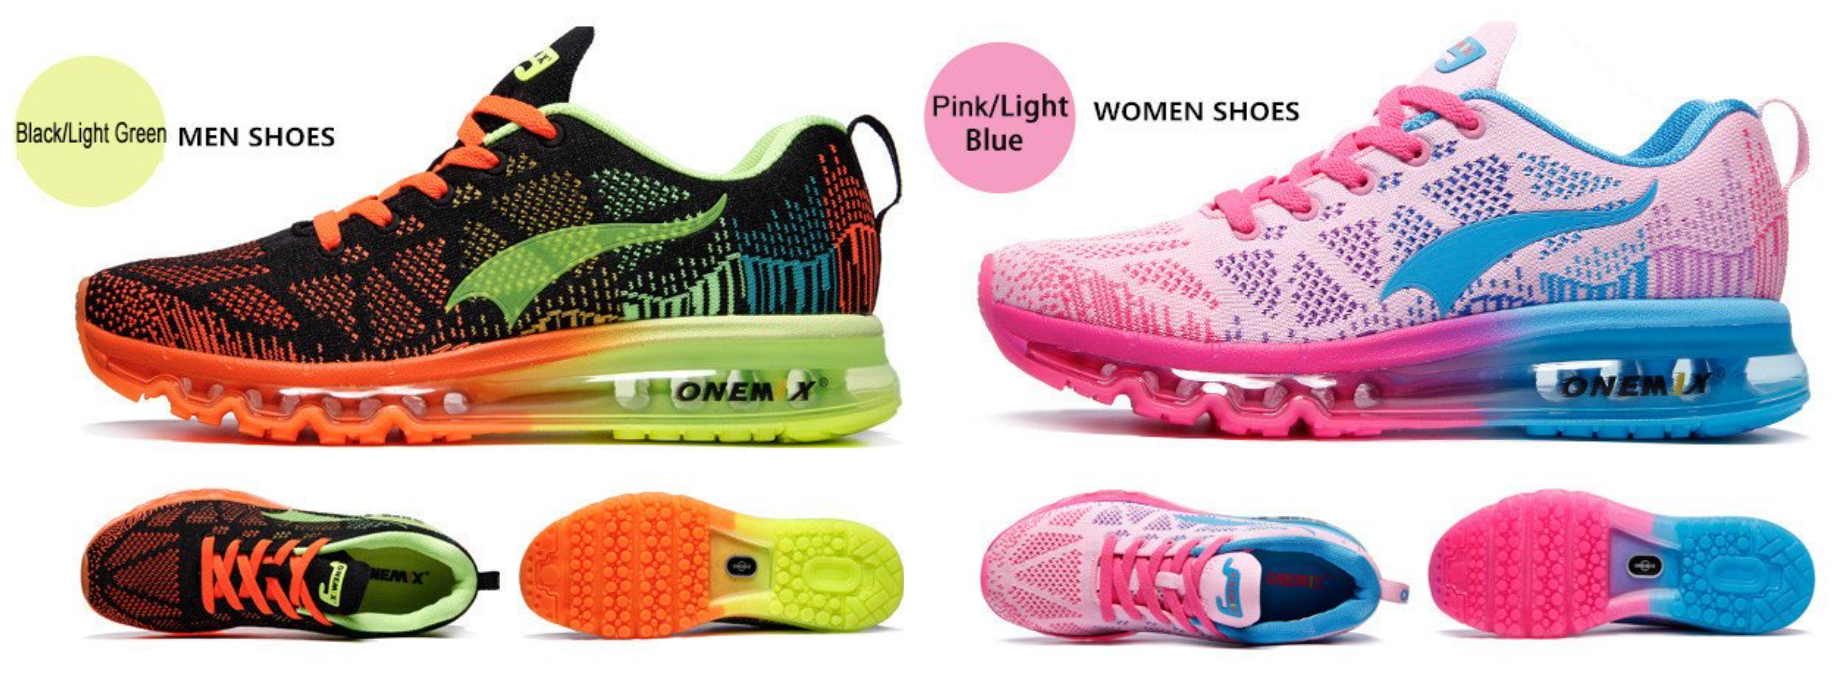 men's and women's running shoes